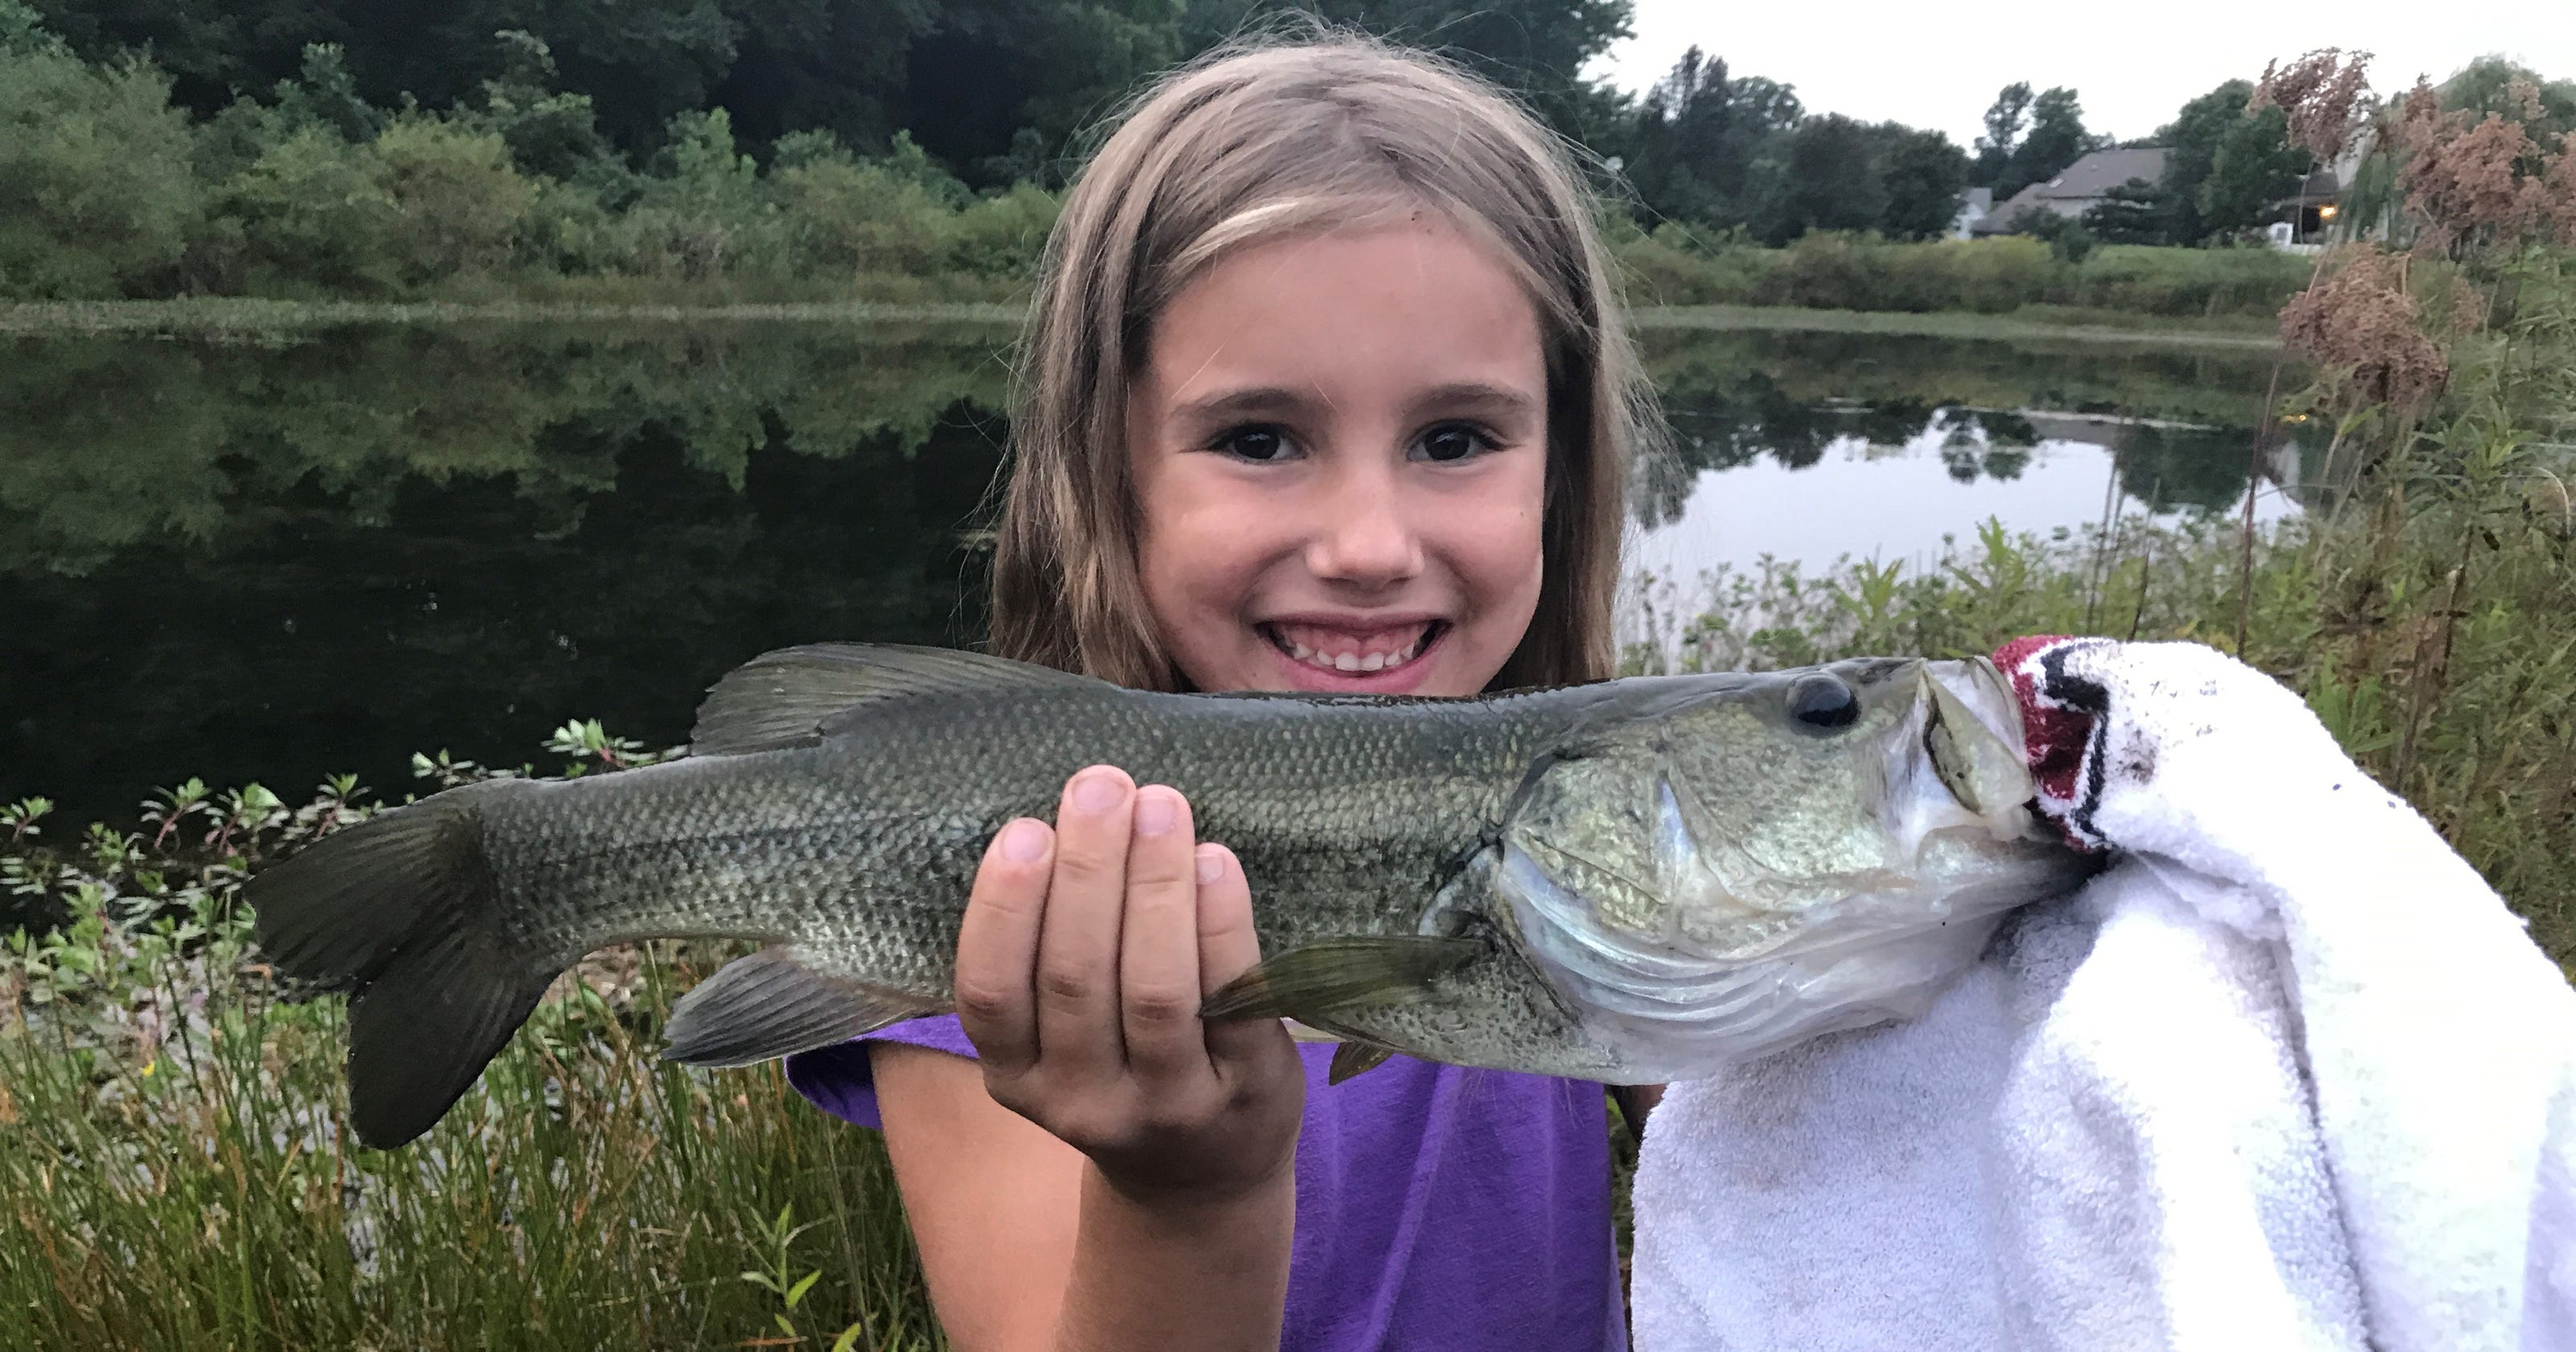 This time of year is perfect for bass fishing